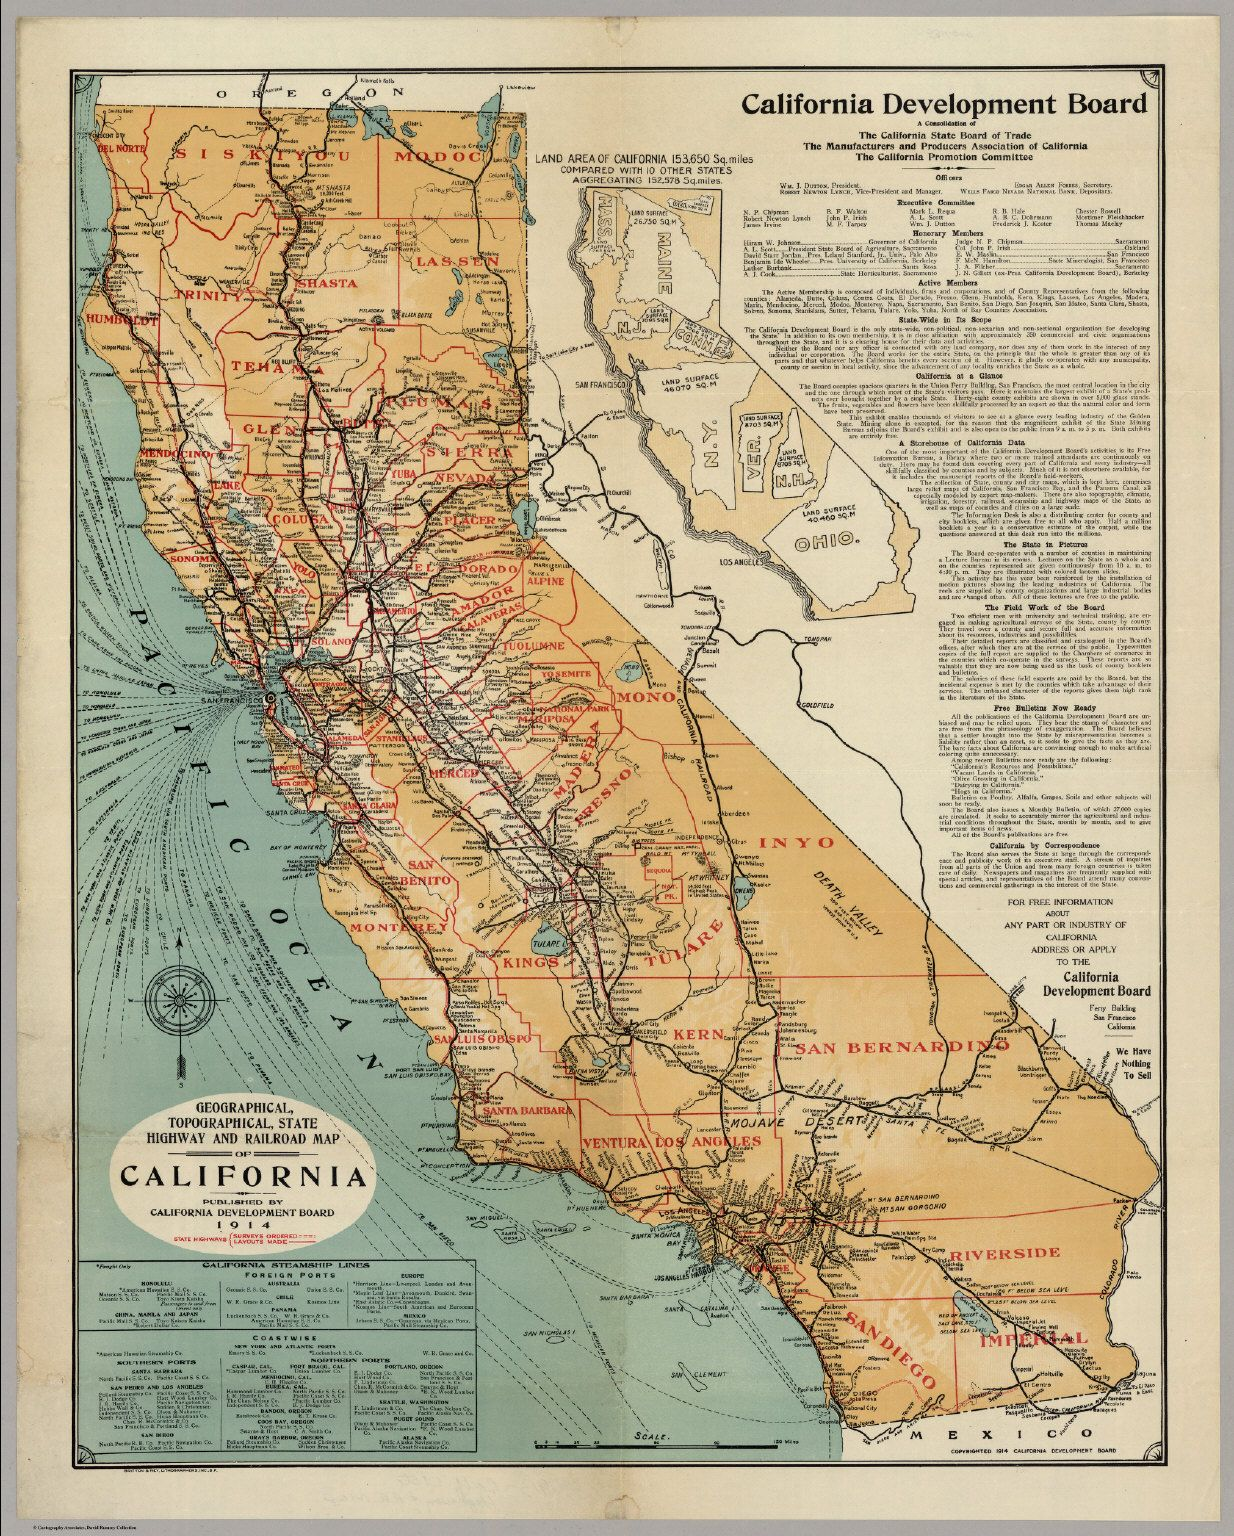 California Highway And Railroad Map David Rumsey Historical Map - Railway map usa 1890